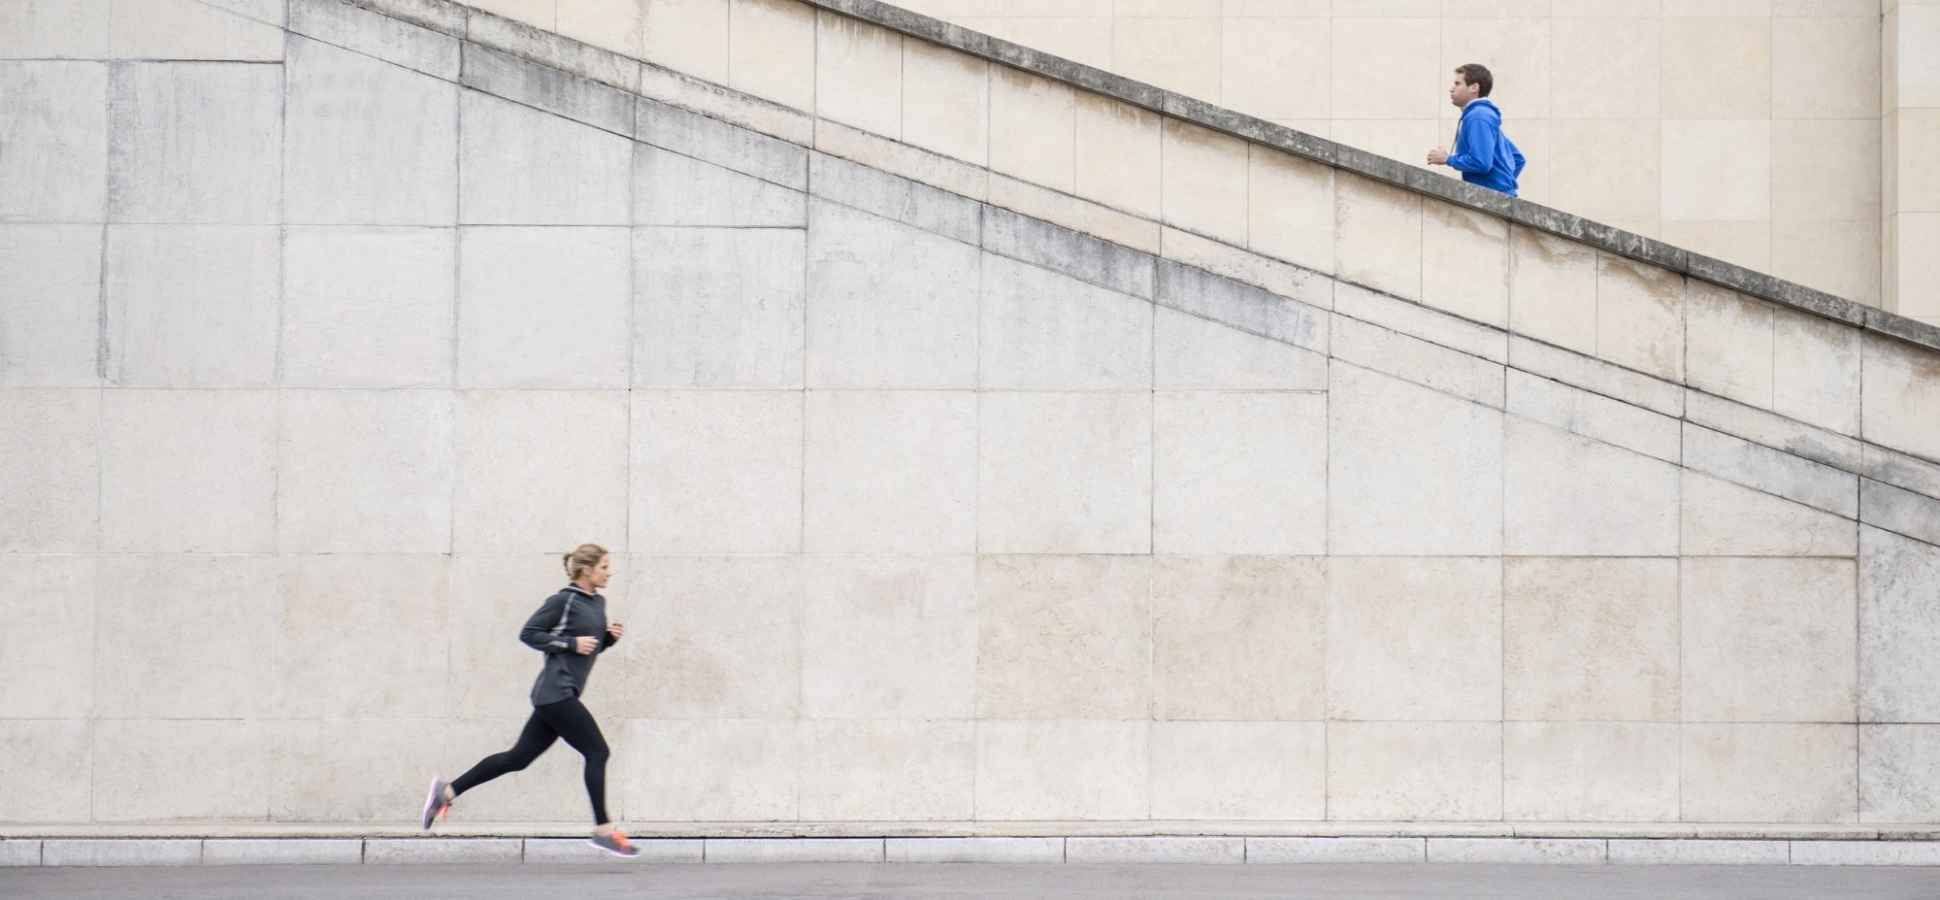 Science Says 1 Minute of This Kind of Exercise May Equal 45 Minutes of Jogging